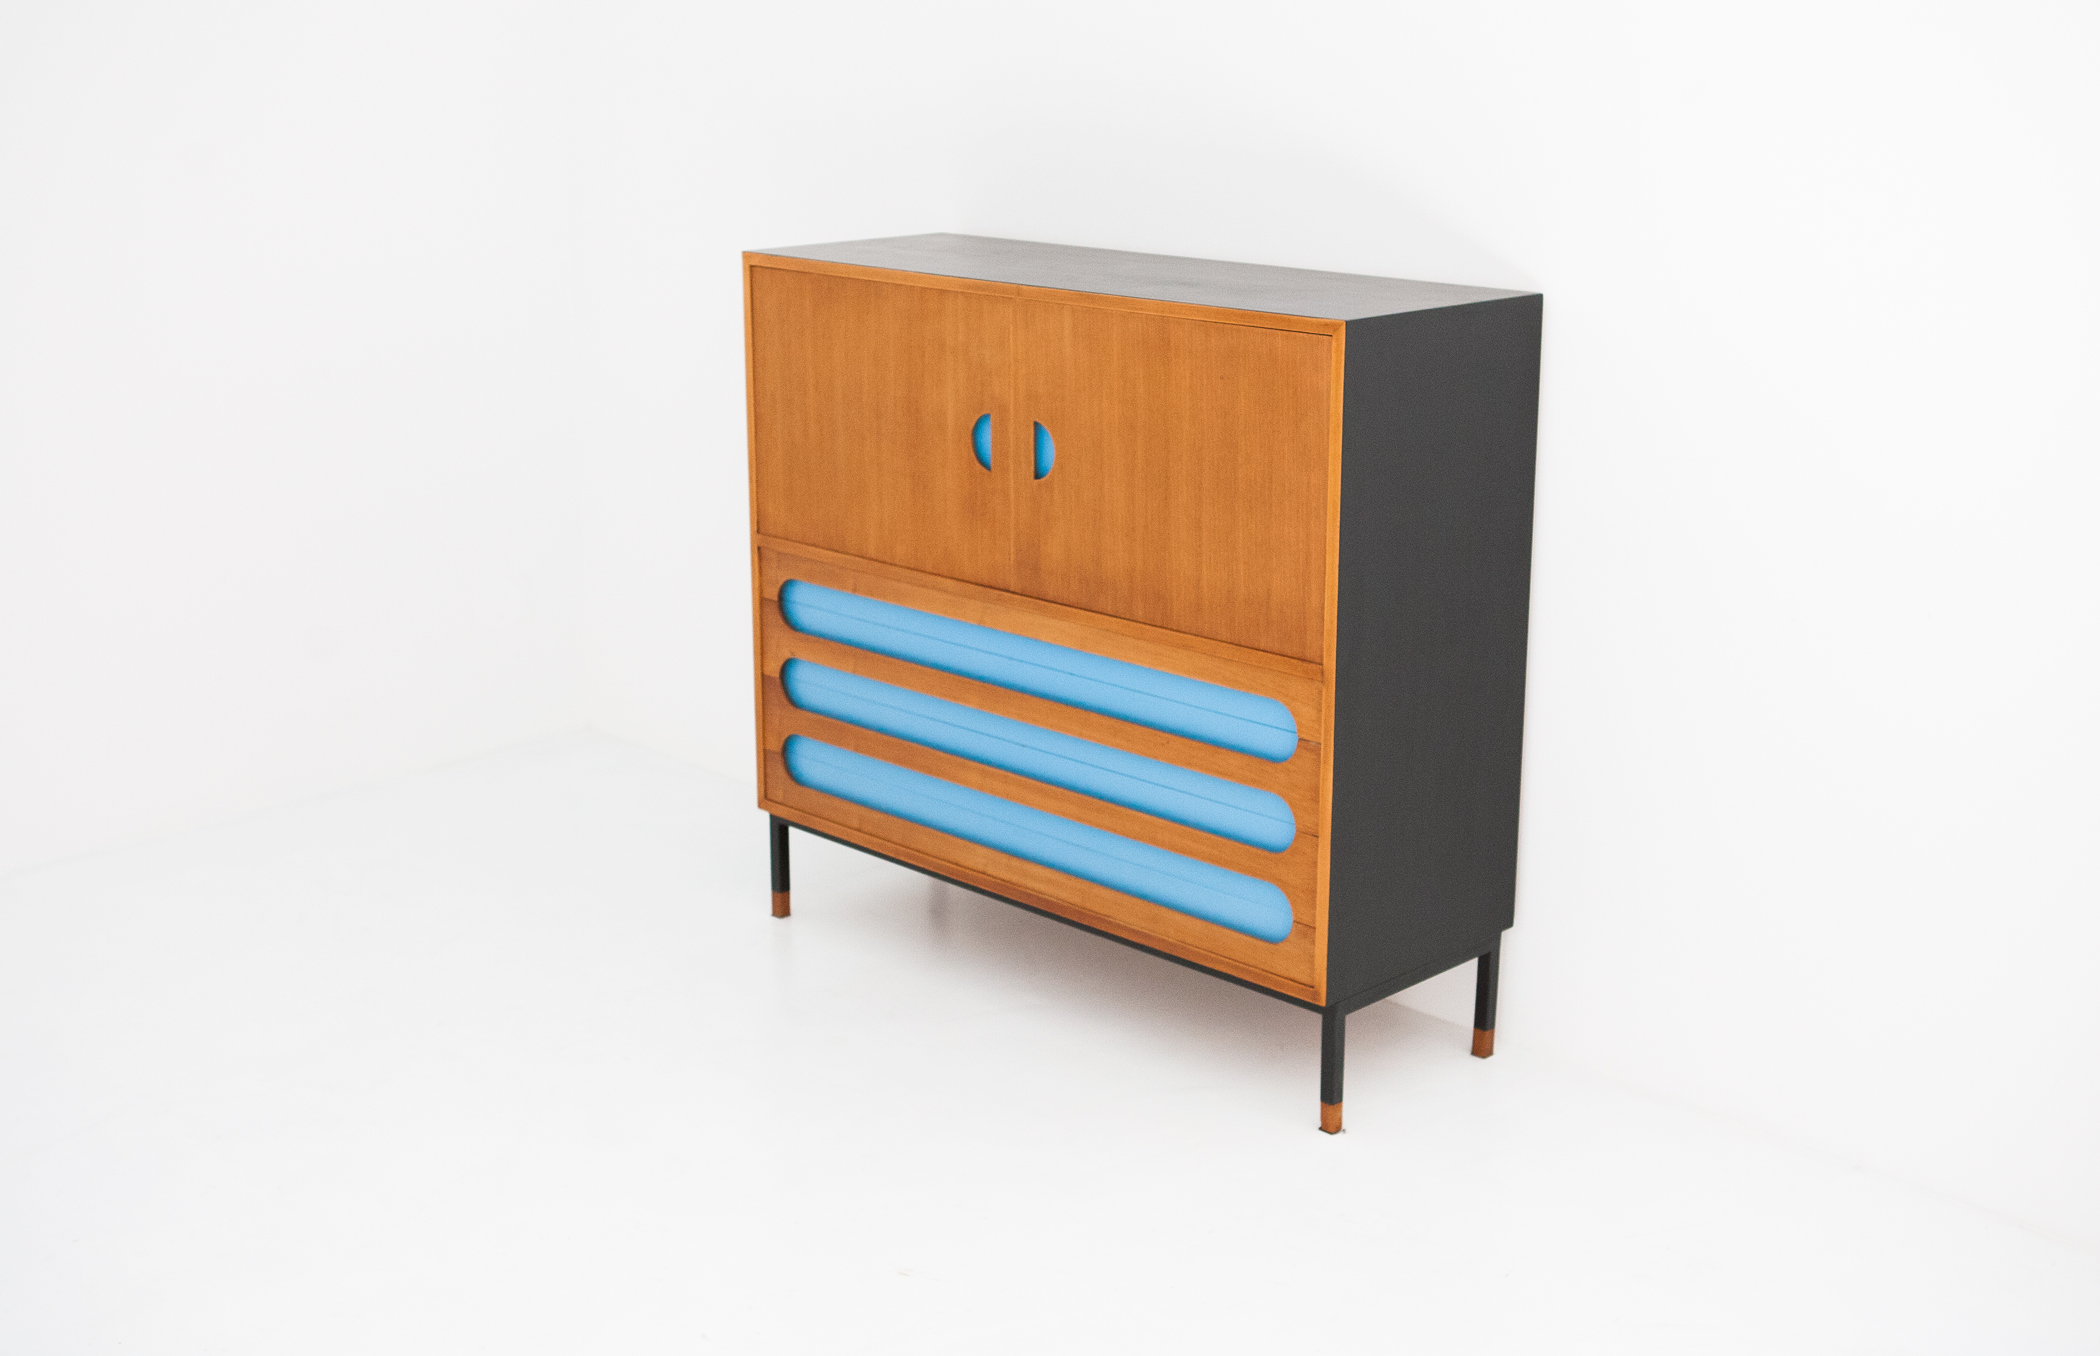 Sideboard 78 2 retro4m for Sideboard 2 m lang